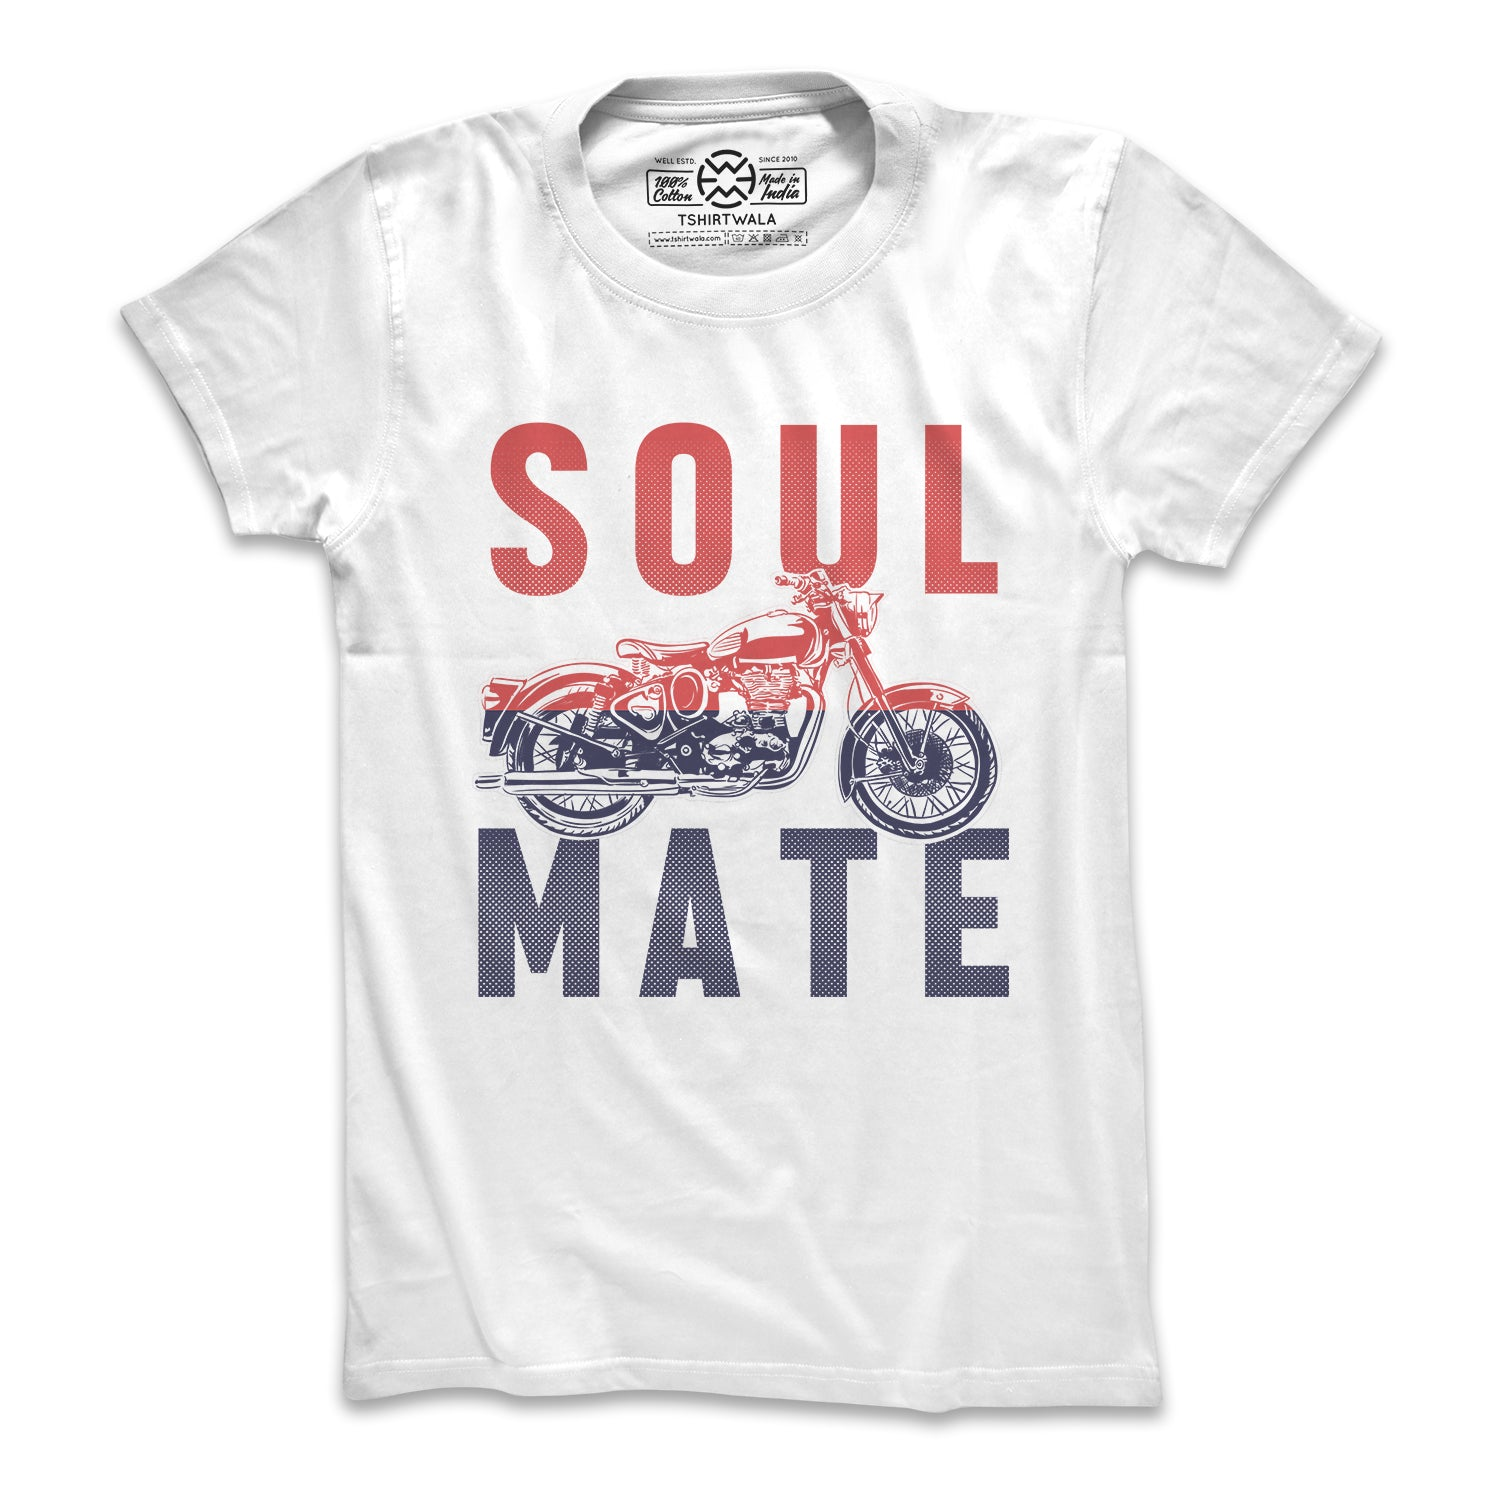 Soul Mate (White) T-shirt